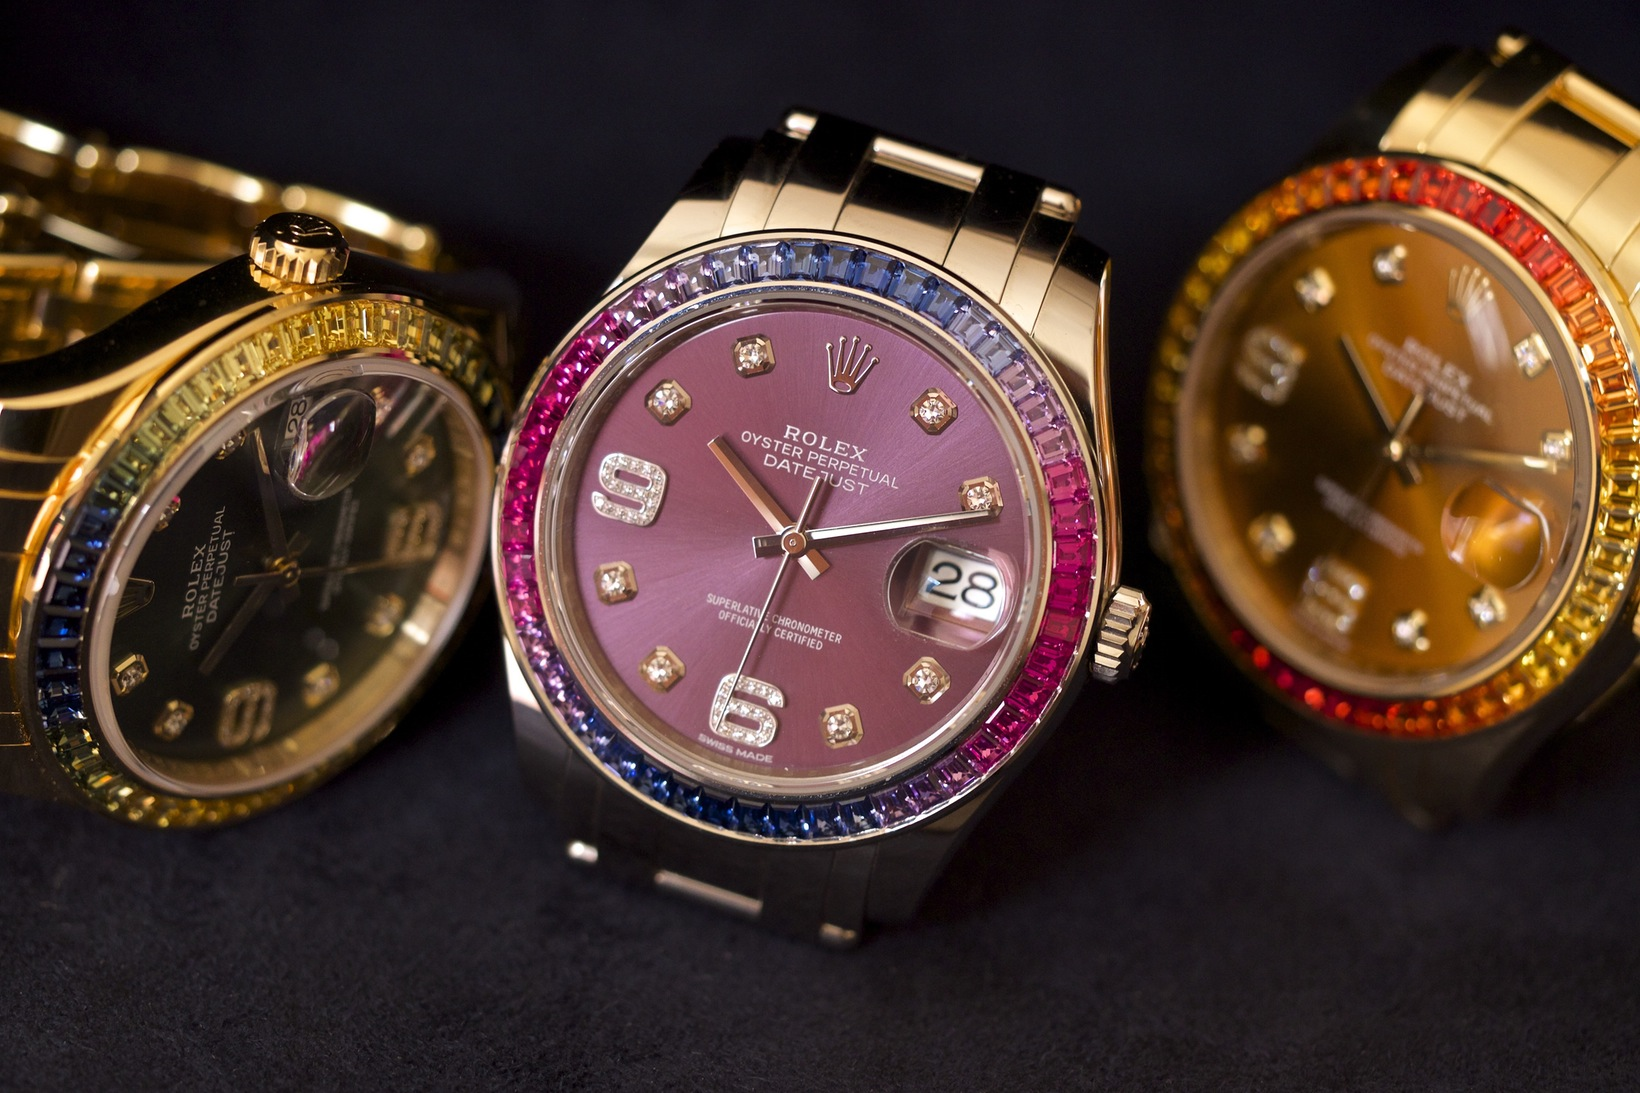 Rolex-Day-Date-Watches